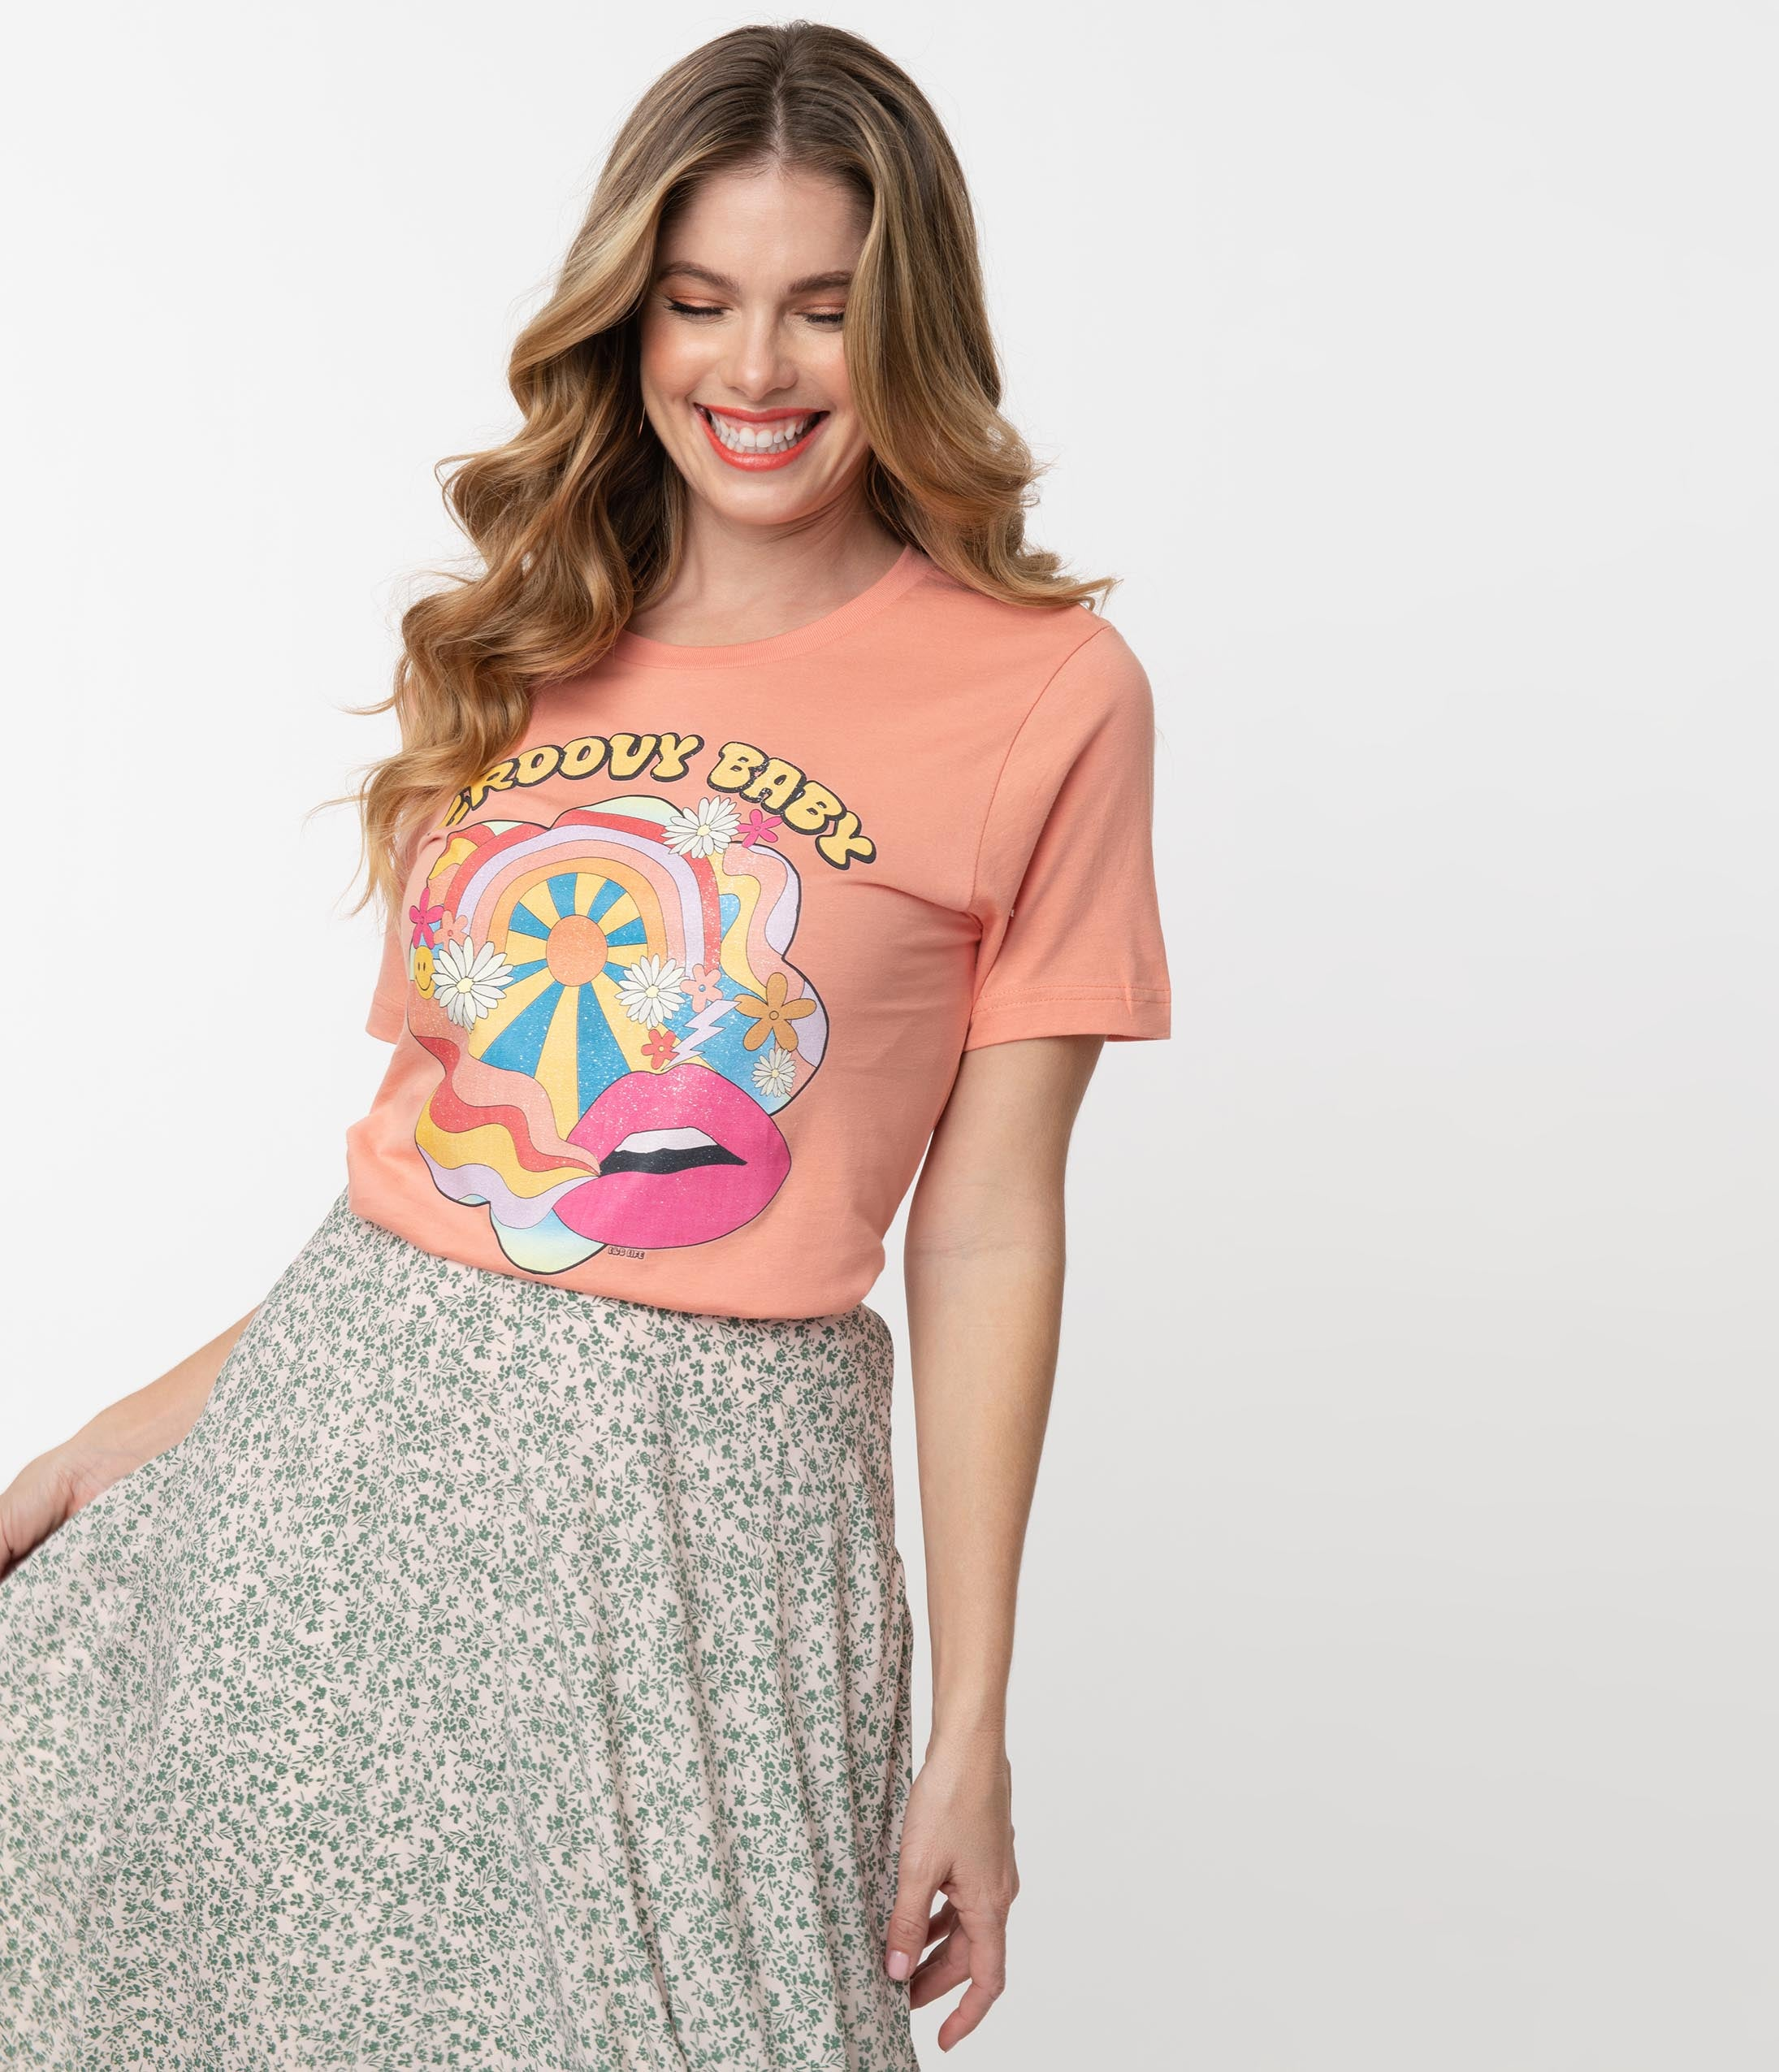 60s Shirts, T-shirts, Blouses, Hippie Shirts 1960S Sunset Groovy Baby Unisex Graphic Tee $36.00 AT vintagedancer.com